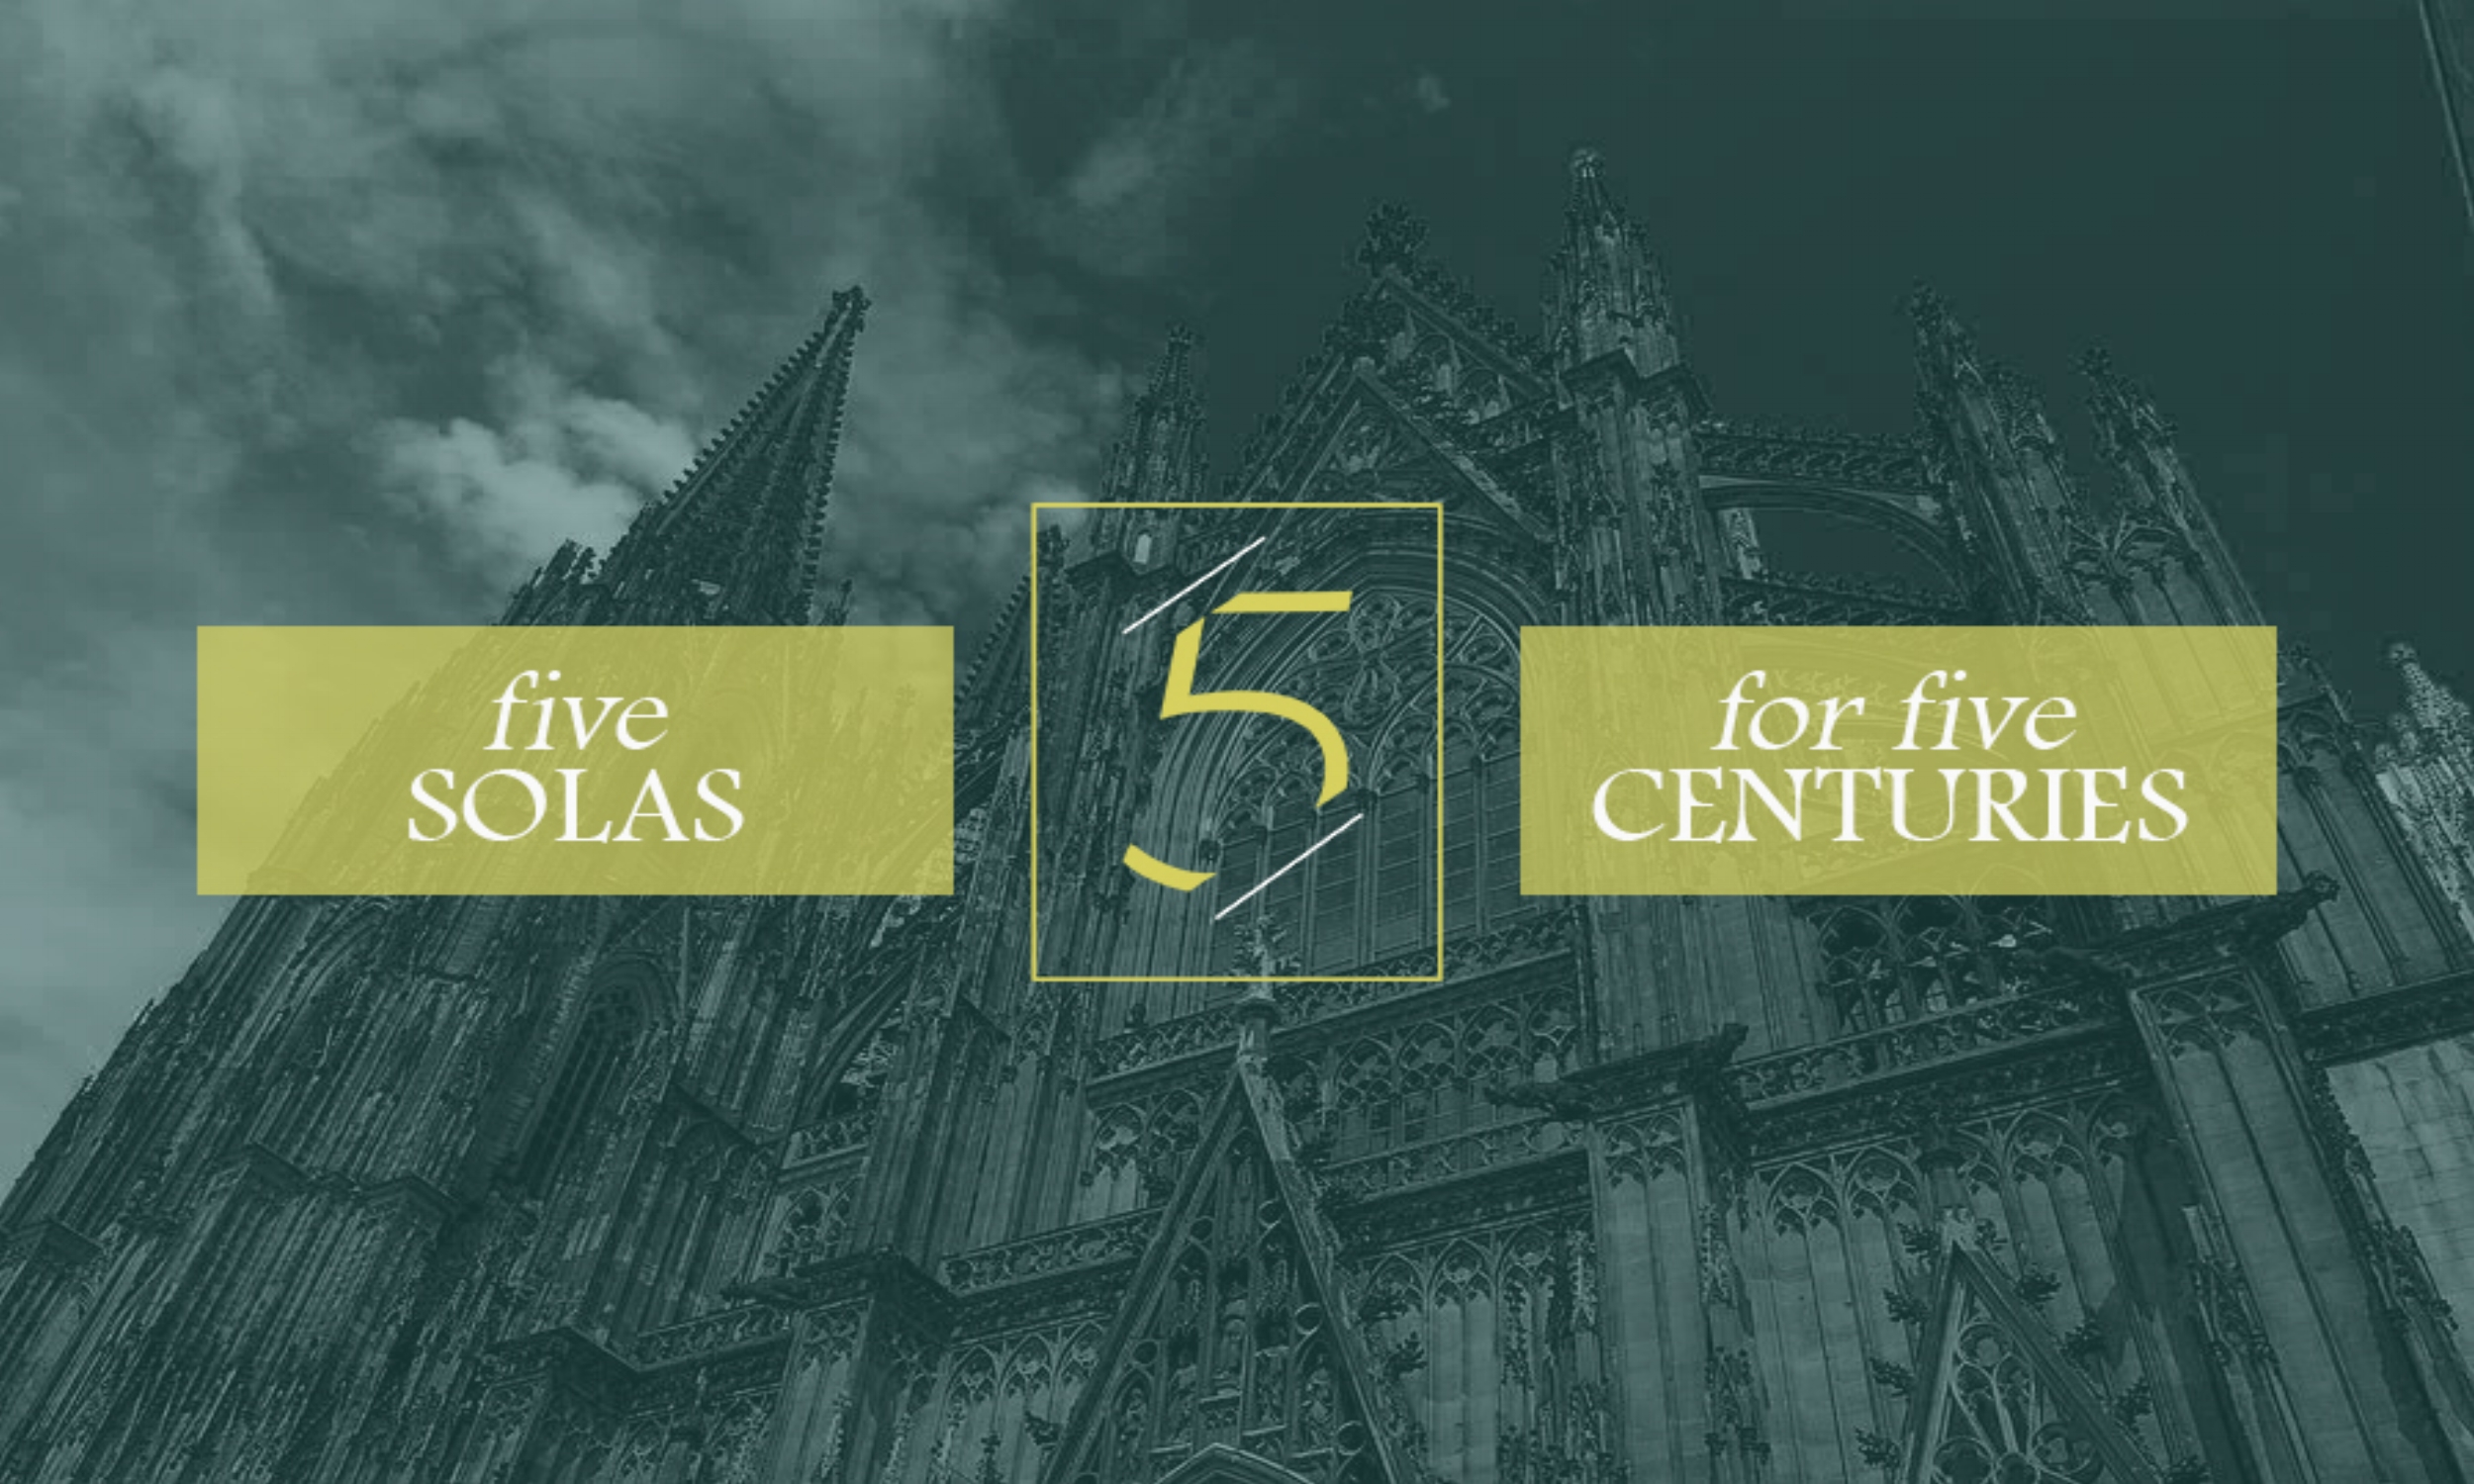 Five hundred years ago, the world forever changed. This 5-week sermon series rediscovers the marks of the Protestant Reformation and roots us in God's word.